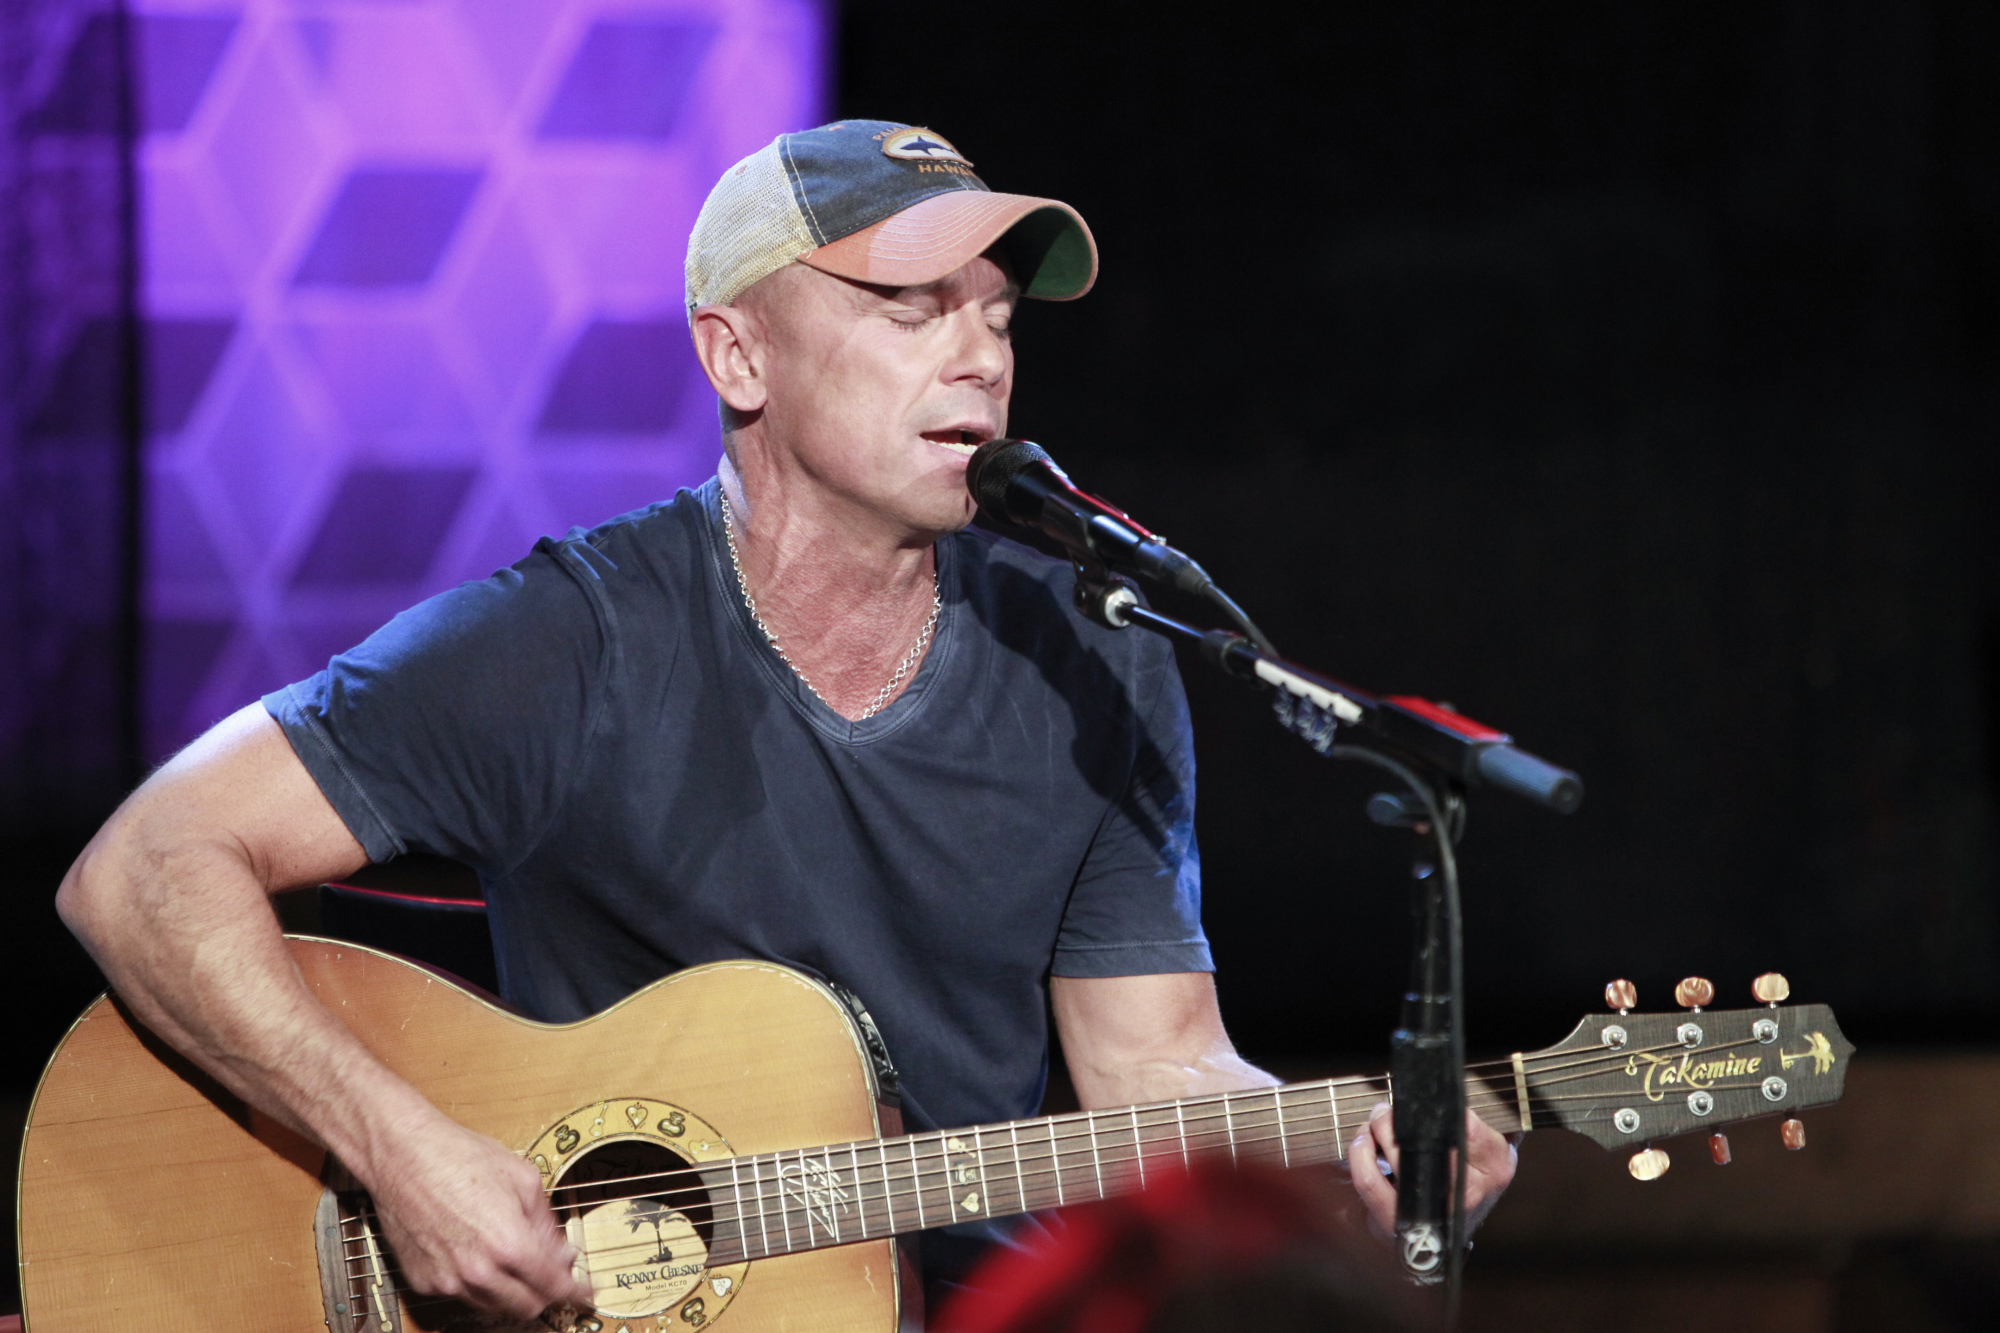 8. Kenny Chesney Performs